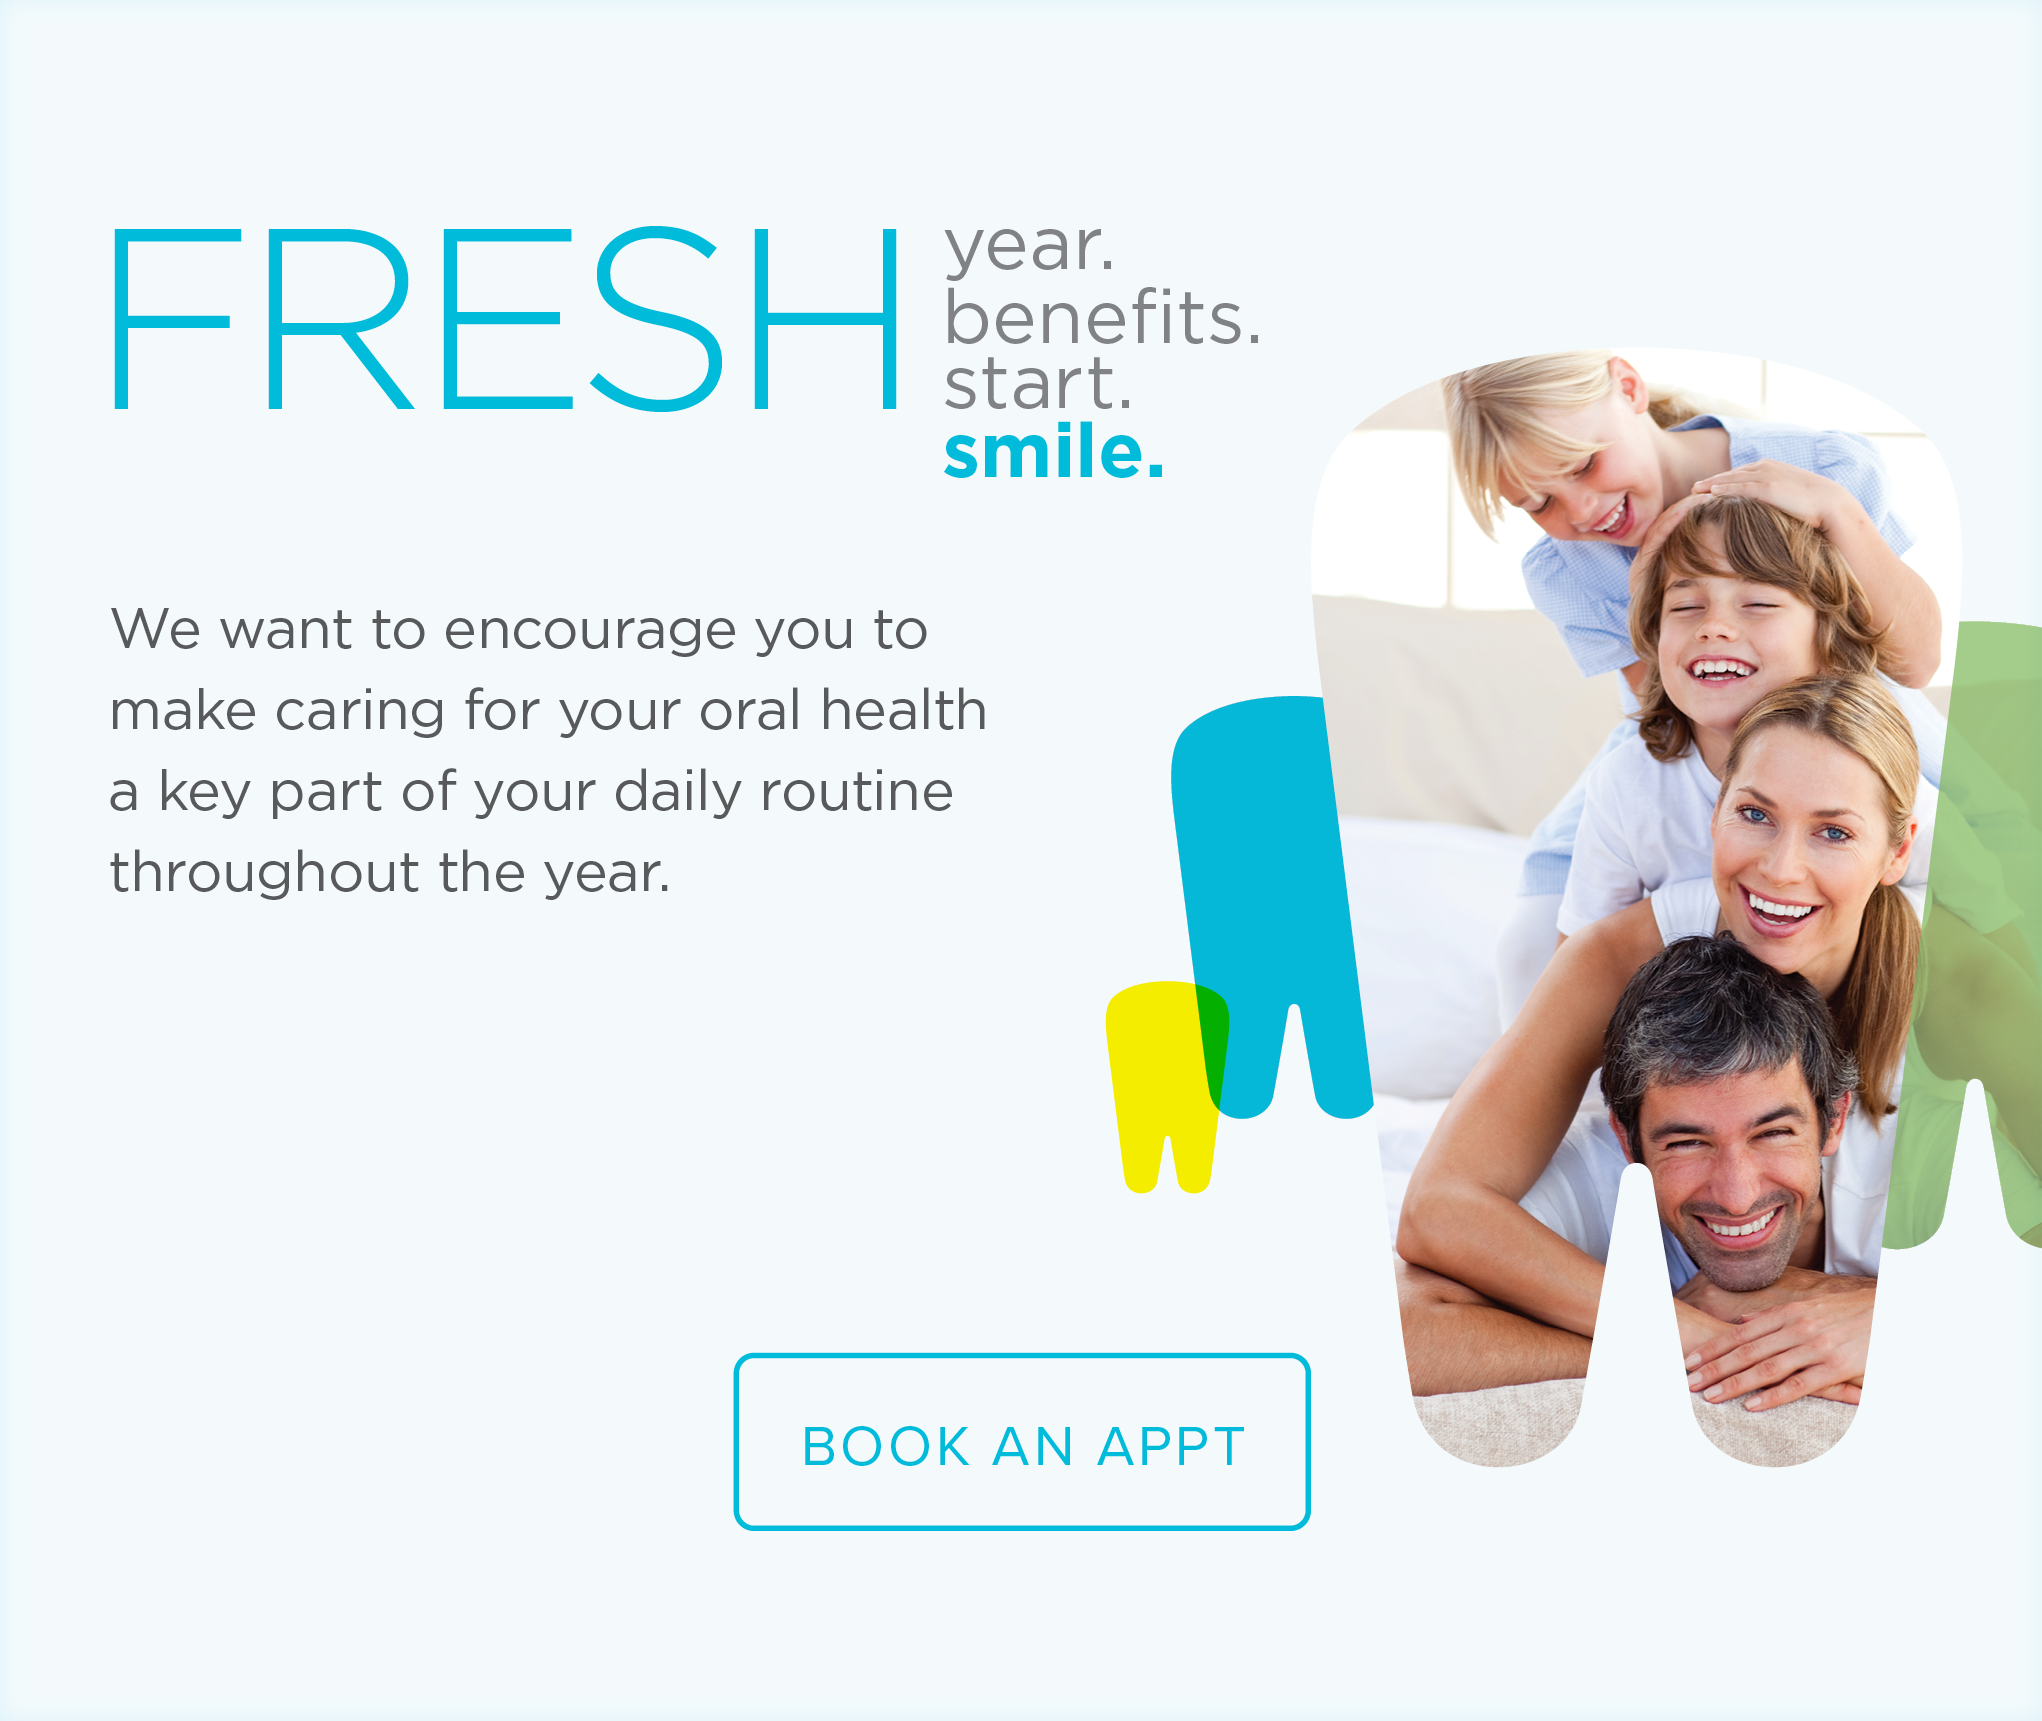 Northglenn Smiles Dentistry - Make the Most of Your Benefits